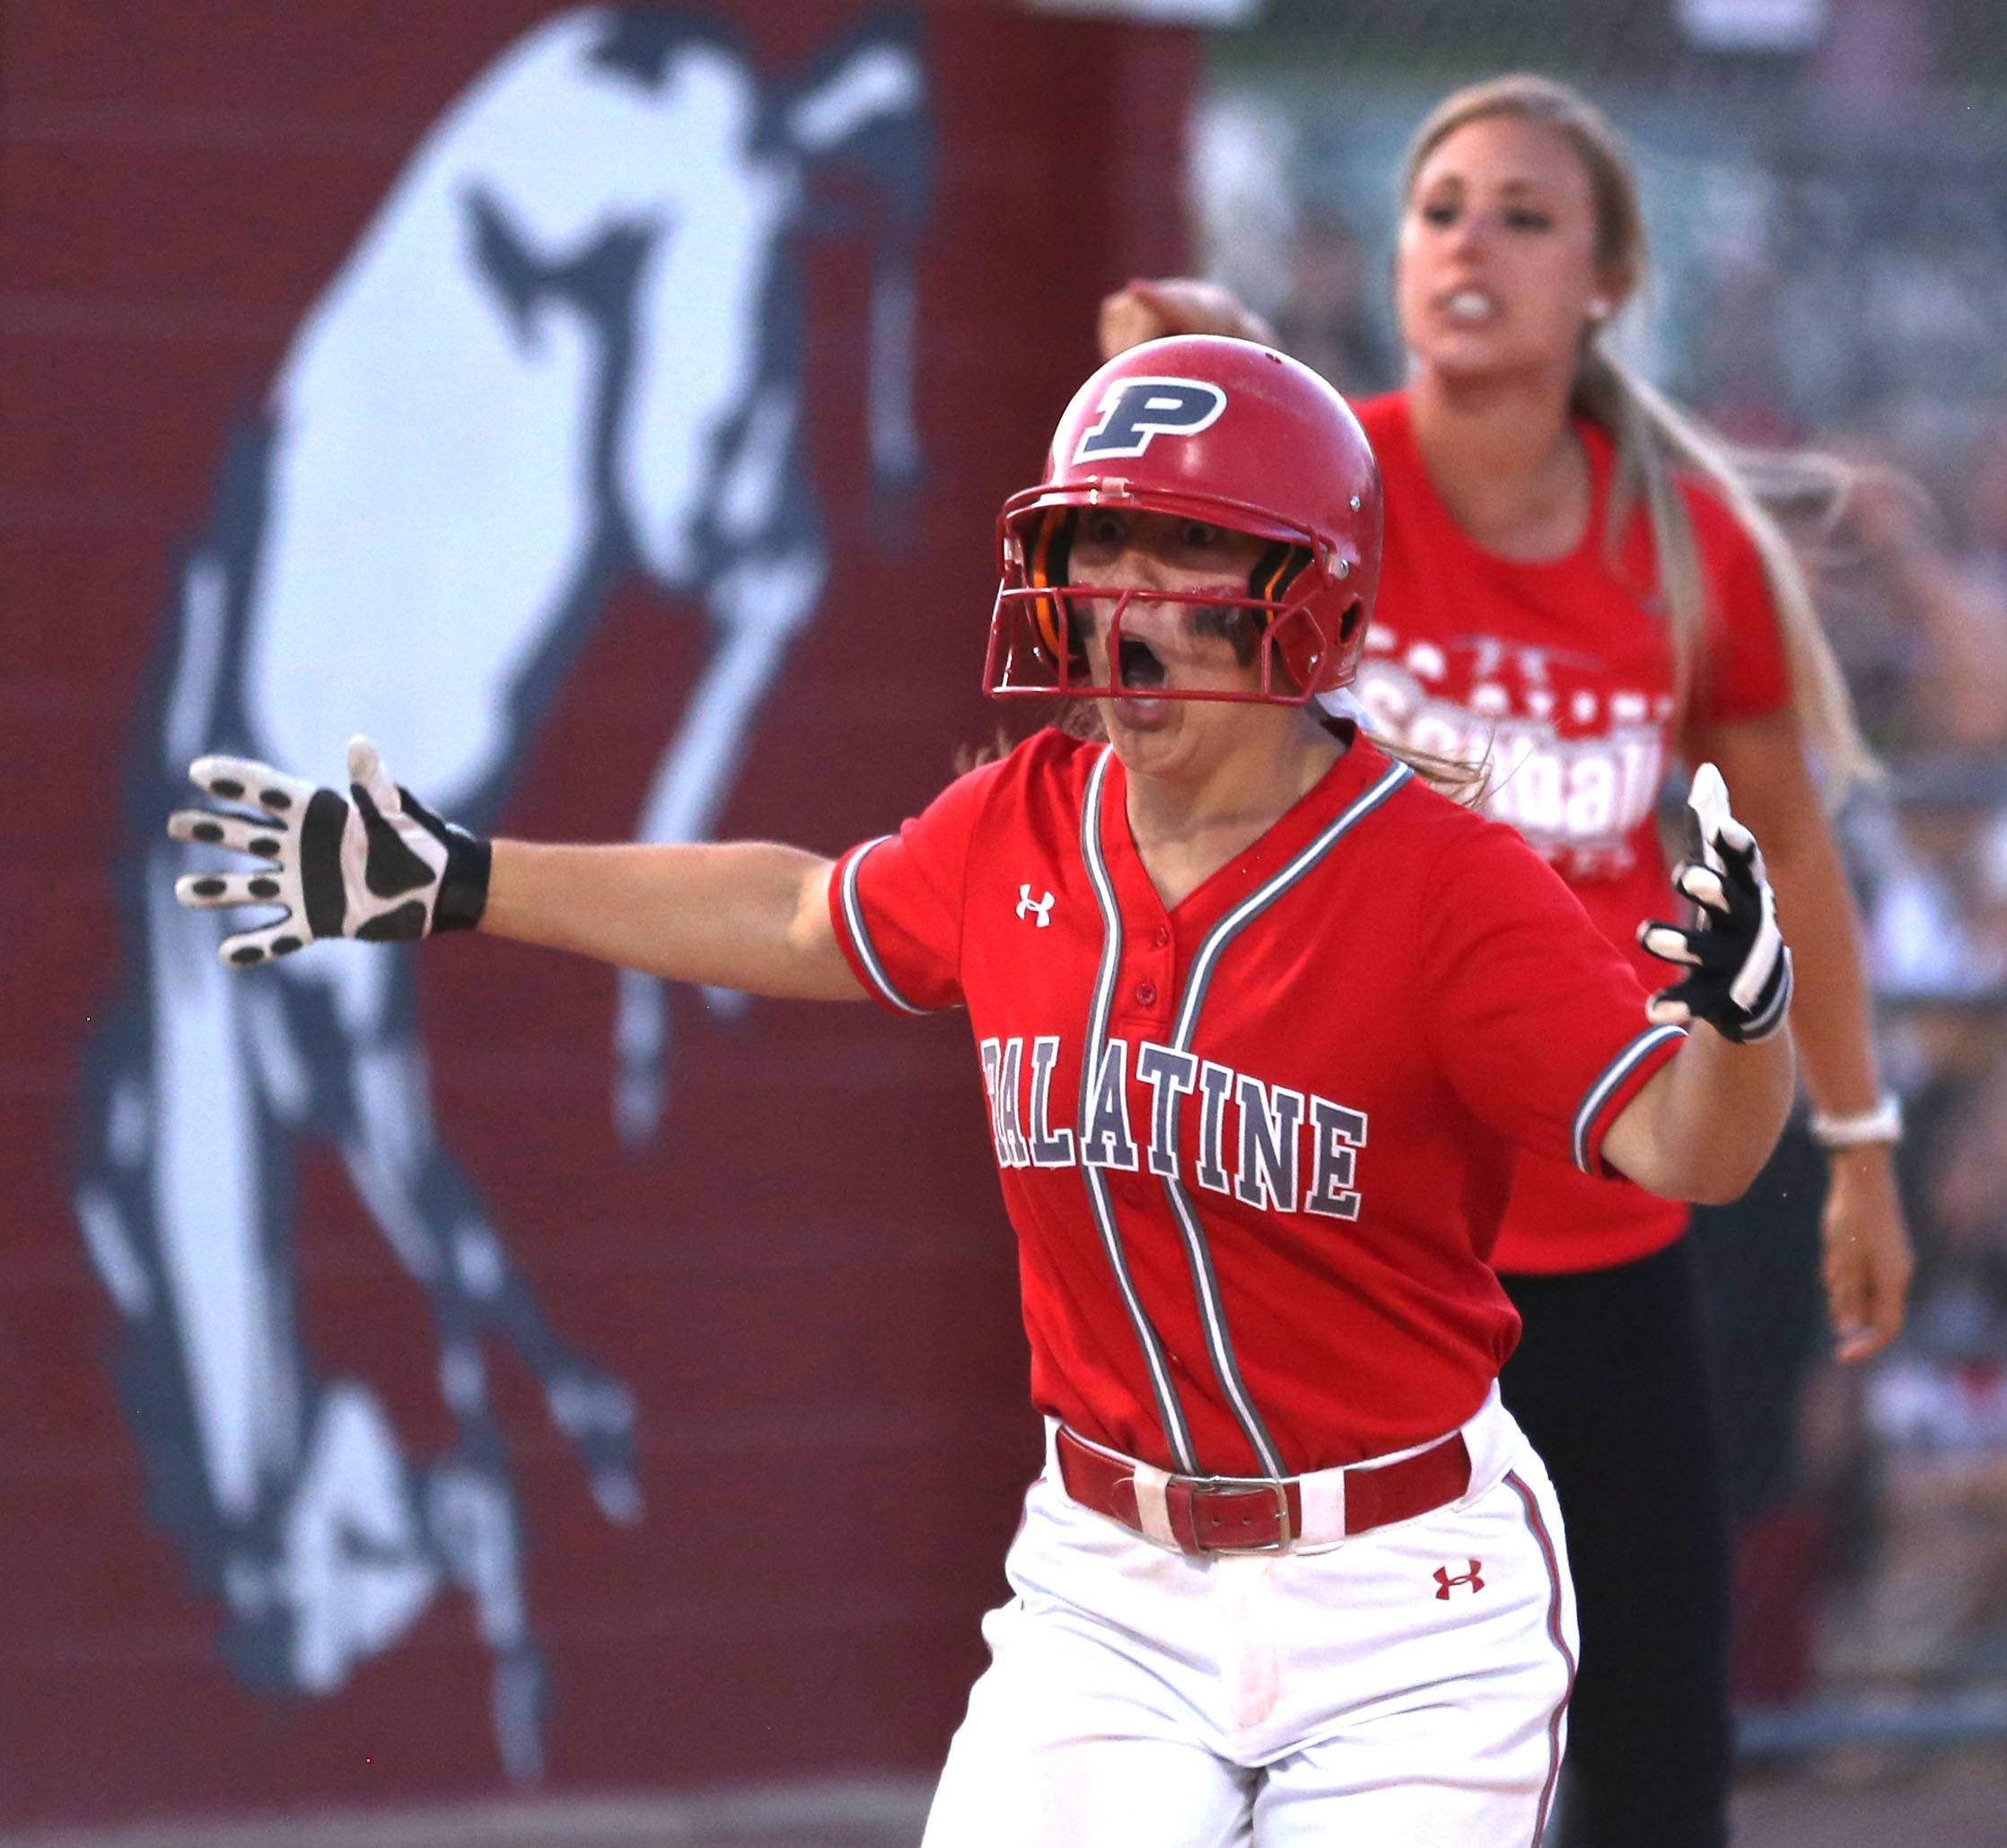 Palatine's Kaitlyn Reed heads for the plate after her home run during Class 4A supersectional action at Barrington on Monday night.